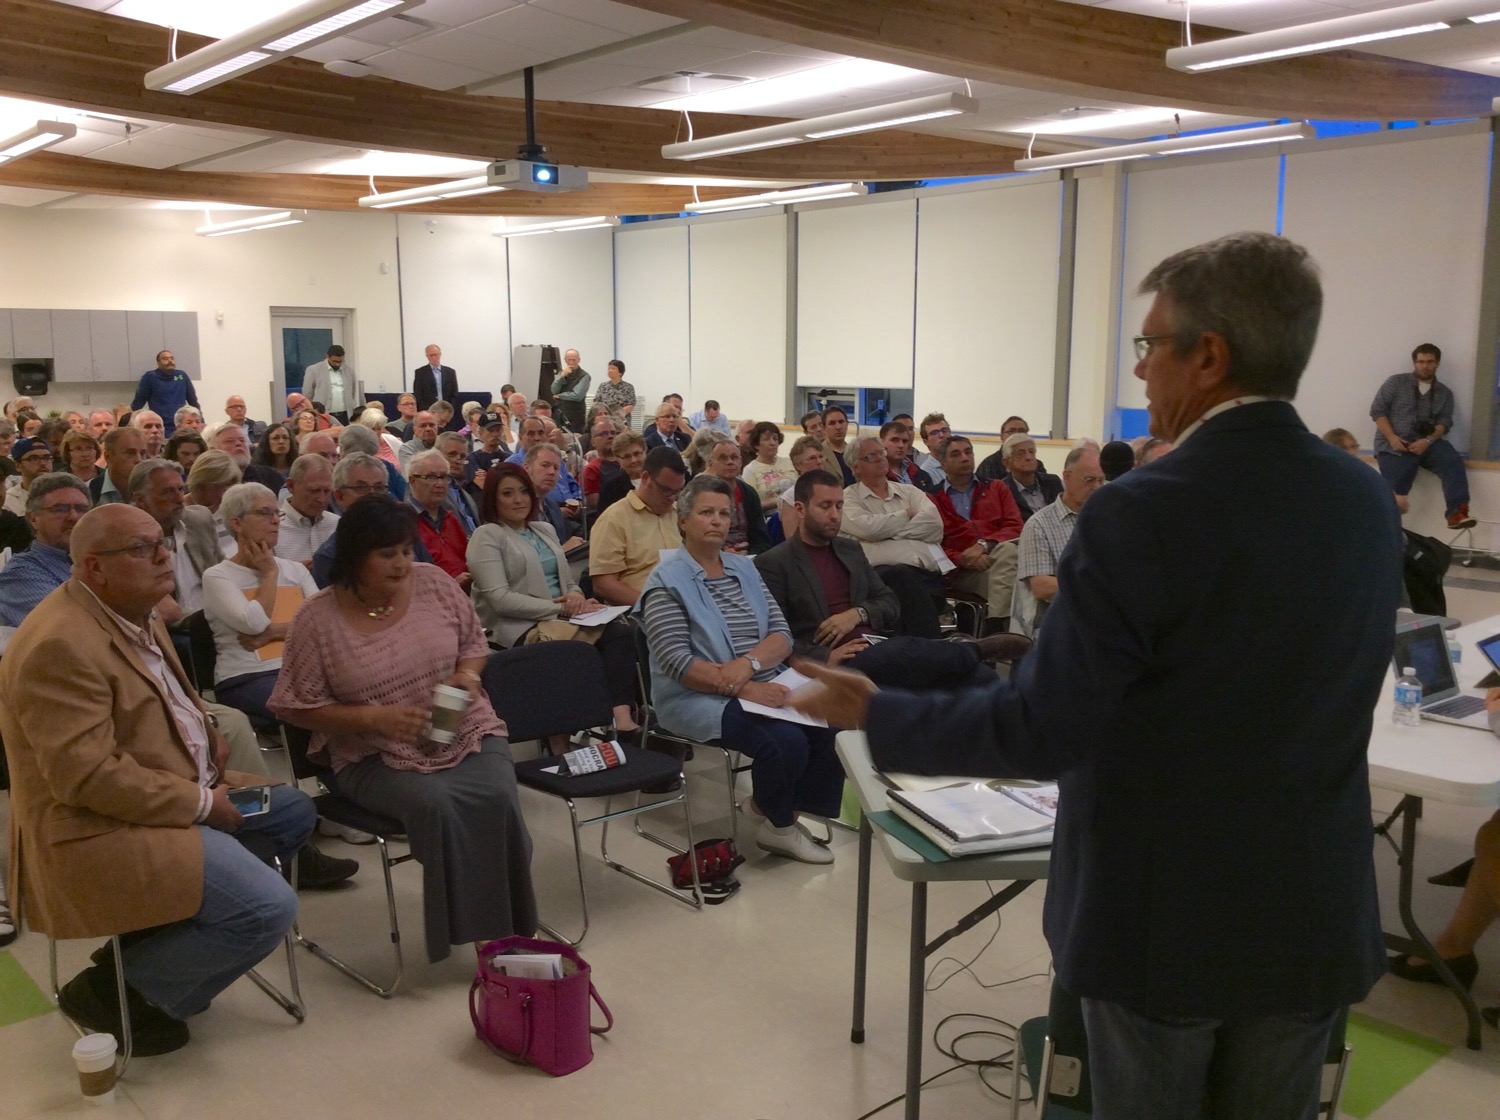 Welcoming participants live and online to the Cloverdale - Langley City Electoral Reform Town Hall - August 2, 2016